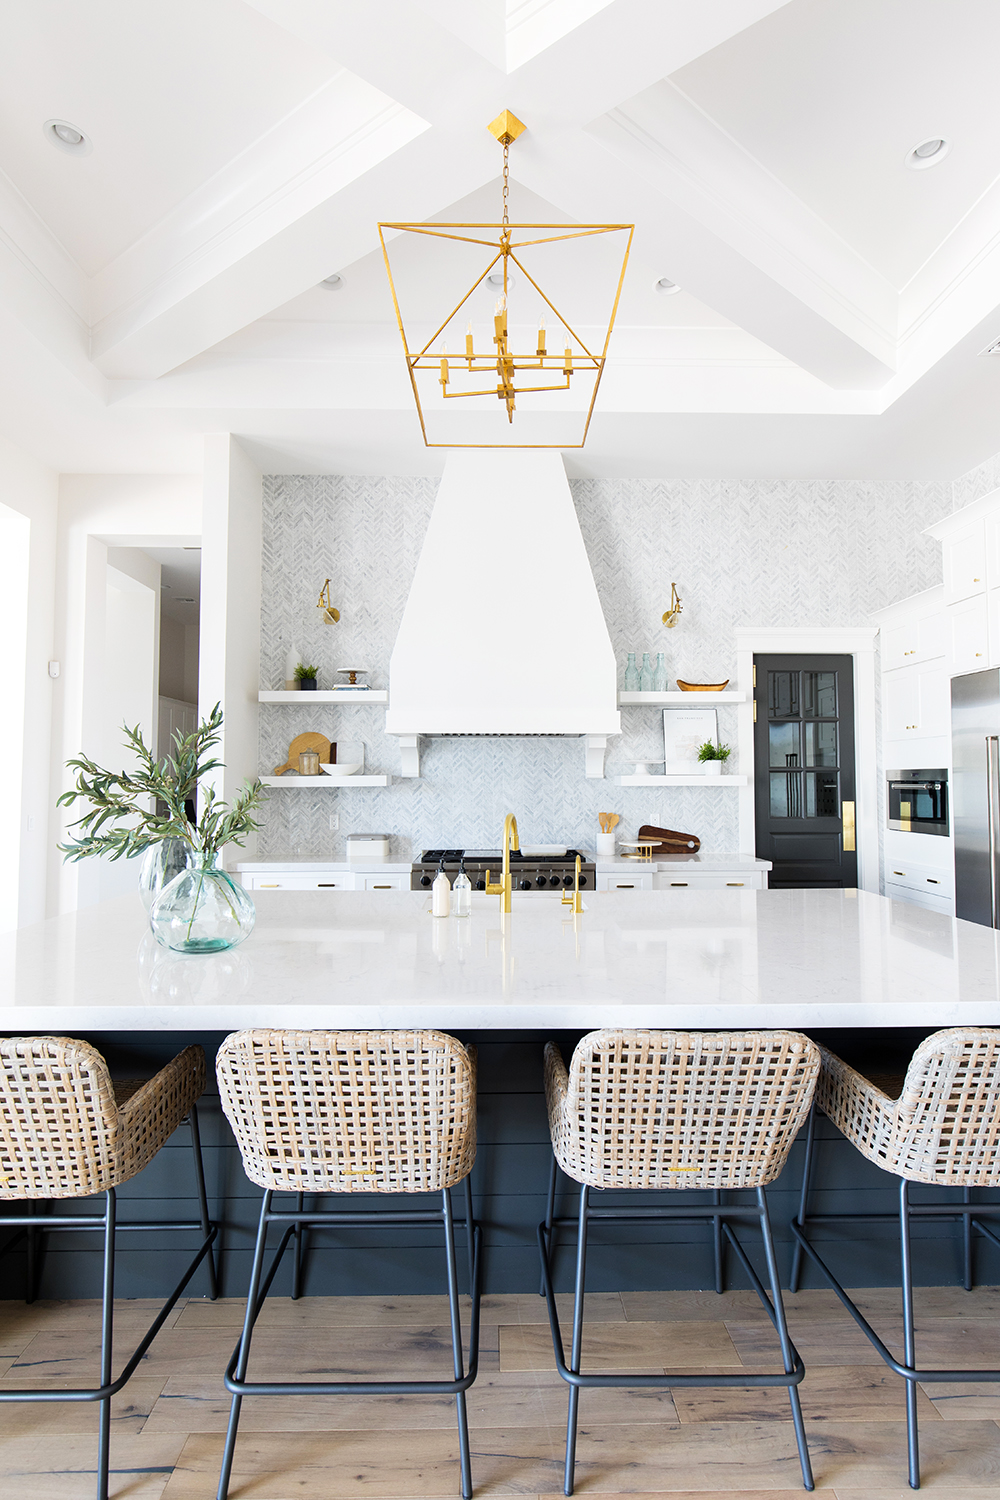 WHITE WING WATERMAN KITCHEN REVEAL by popular home and interior design blogger E. INTERIORS